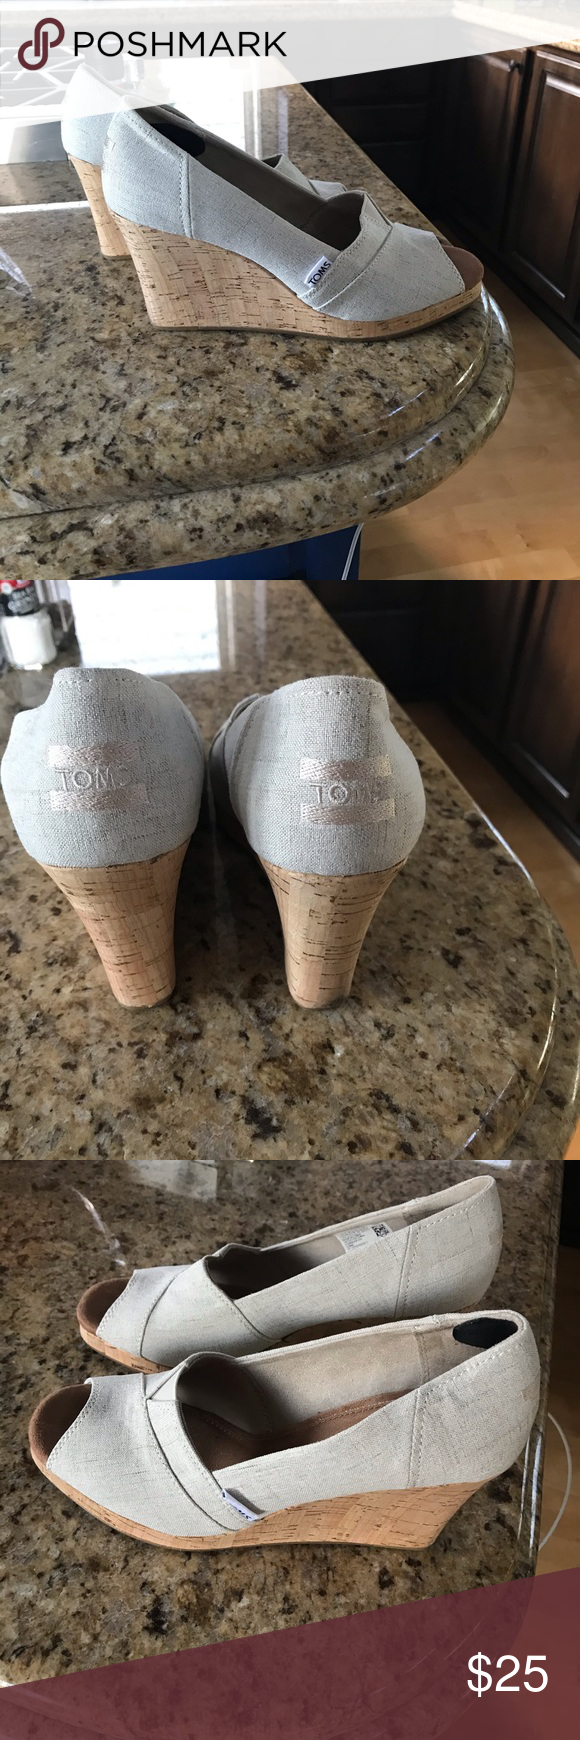 Toms wedges worn once Worn once.  Toms wedges.  In pretty much perfect condition. Toms Shoes #tomwedges Toms wedges worn once Worn once.  Toms wedges.  In pretty much perfect condition. Toms Shoes #tomwedges